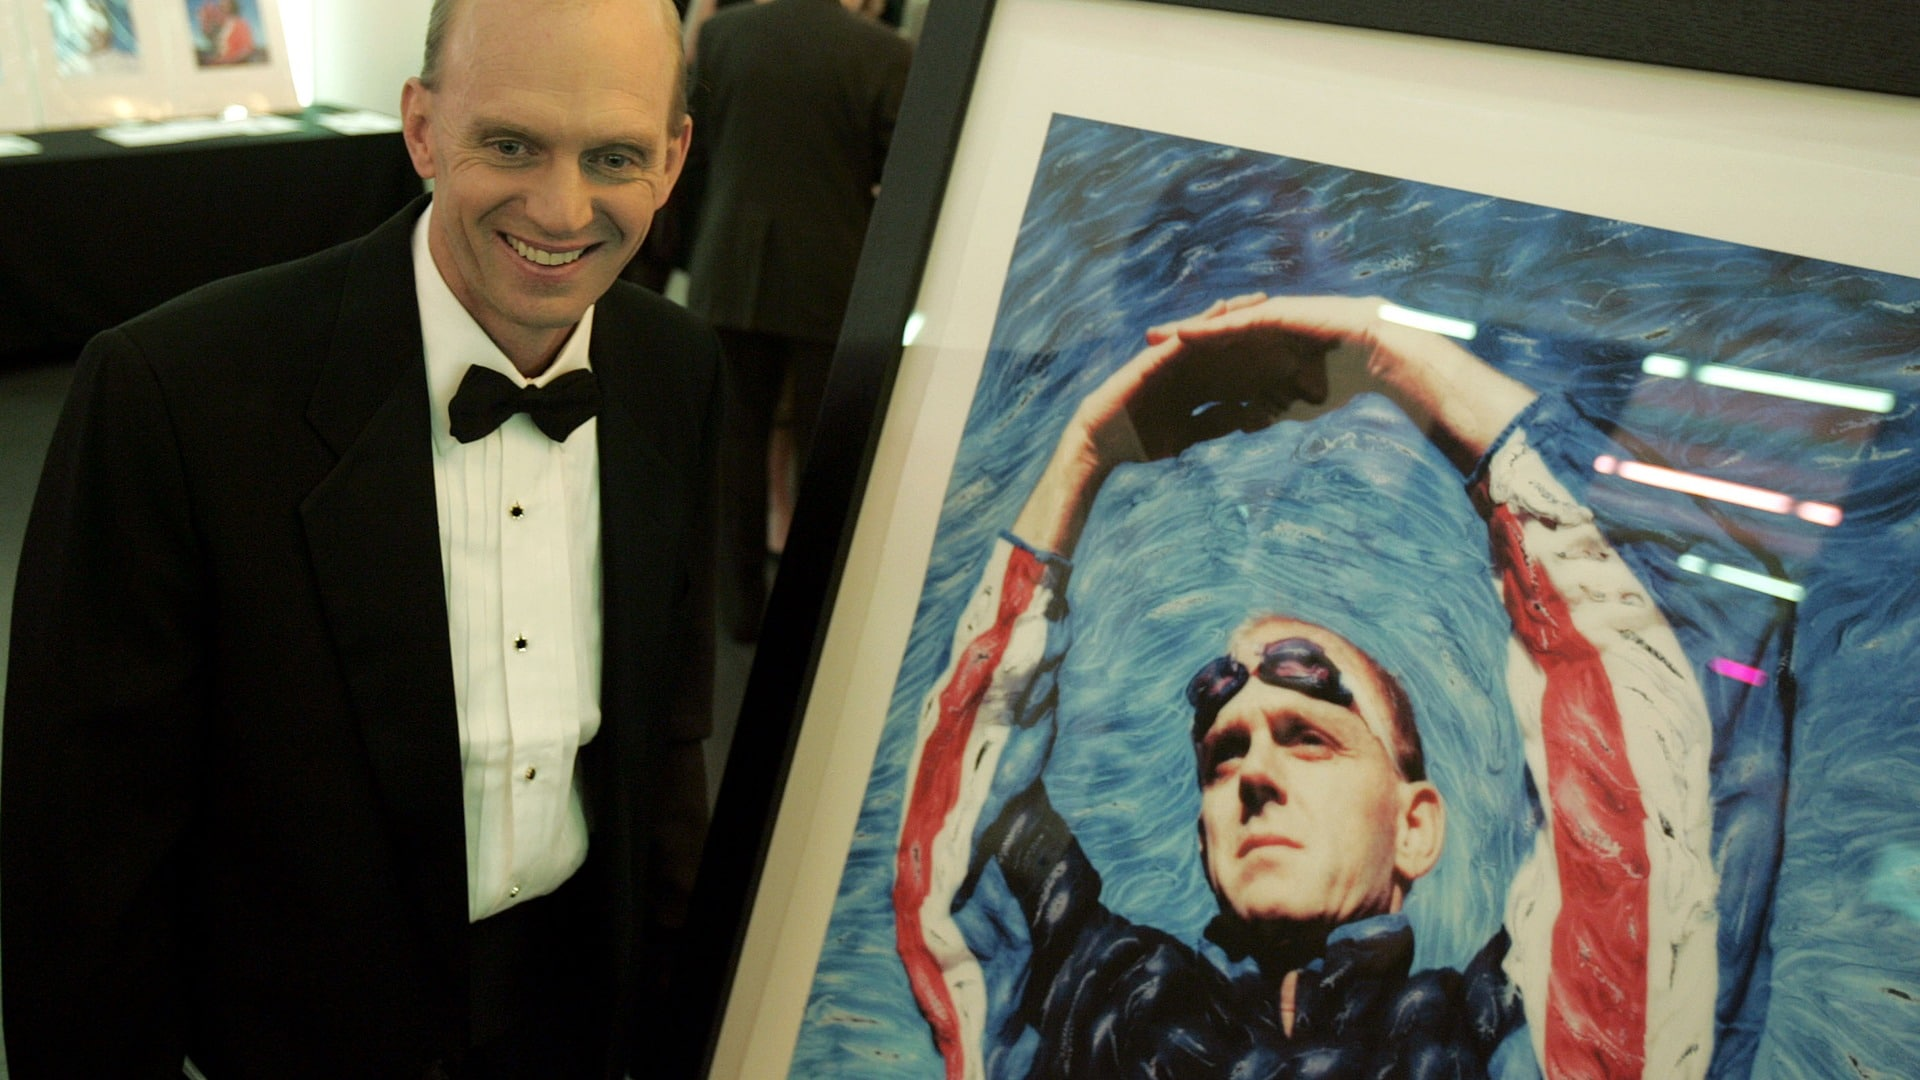 Rowdy Gaines in a tuxedo standing next to a portrait from his swimming career